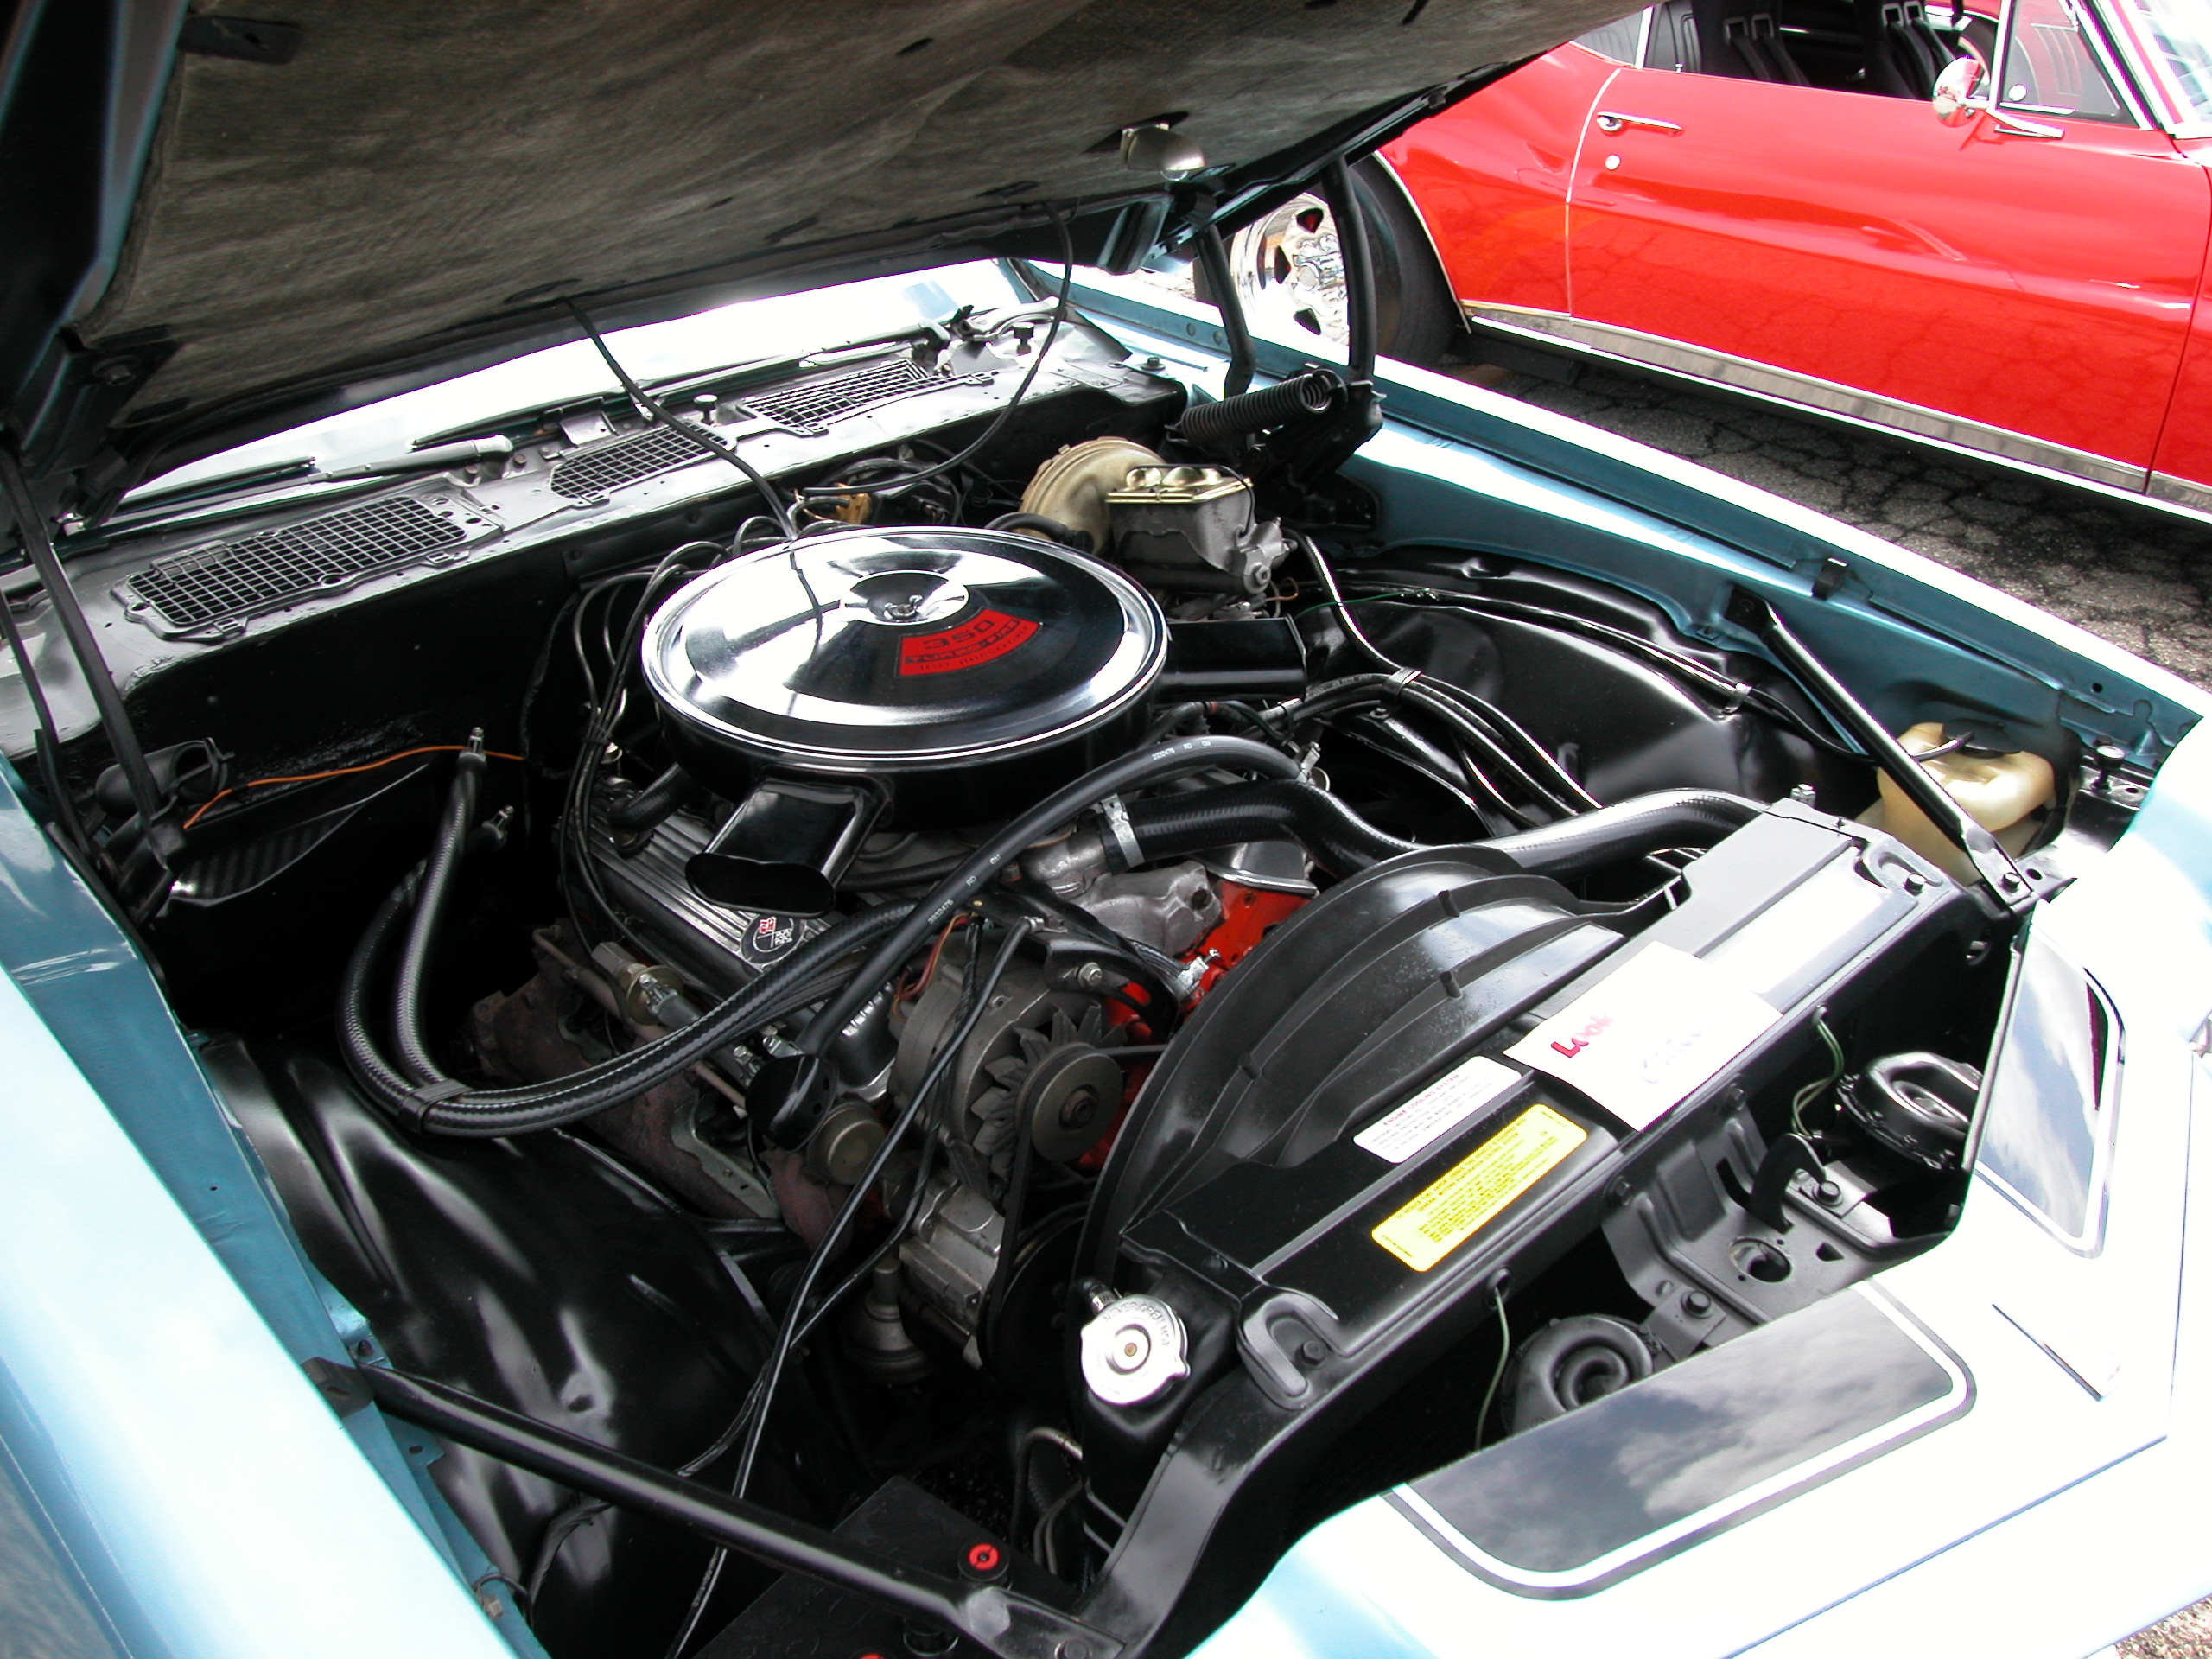 71 Chevy Nova Wiring Diagram Automotive Starter The 350 Cubic Inch Debate Is Small Block 1970 Dash 1974